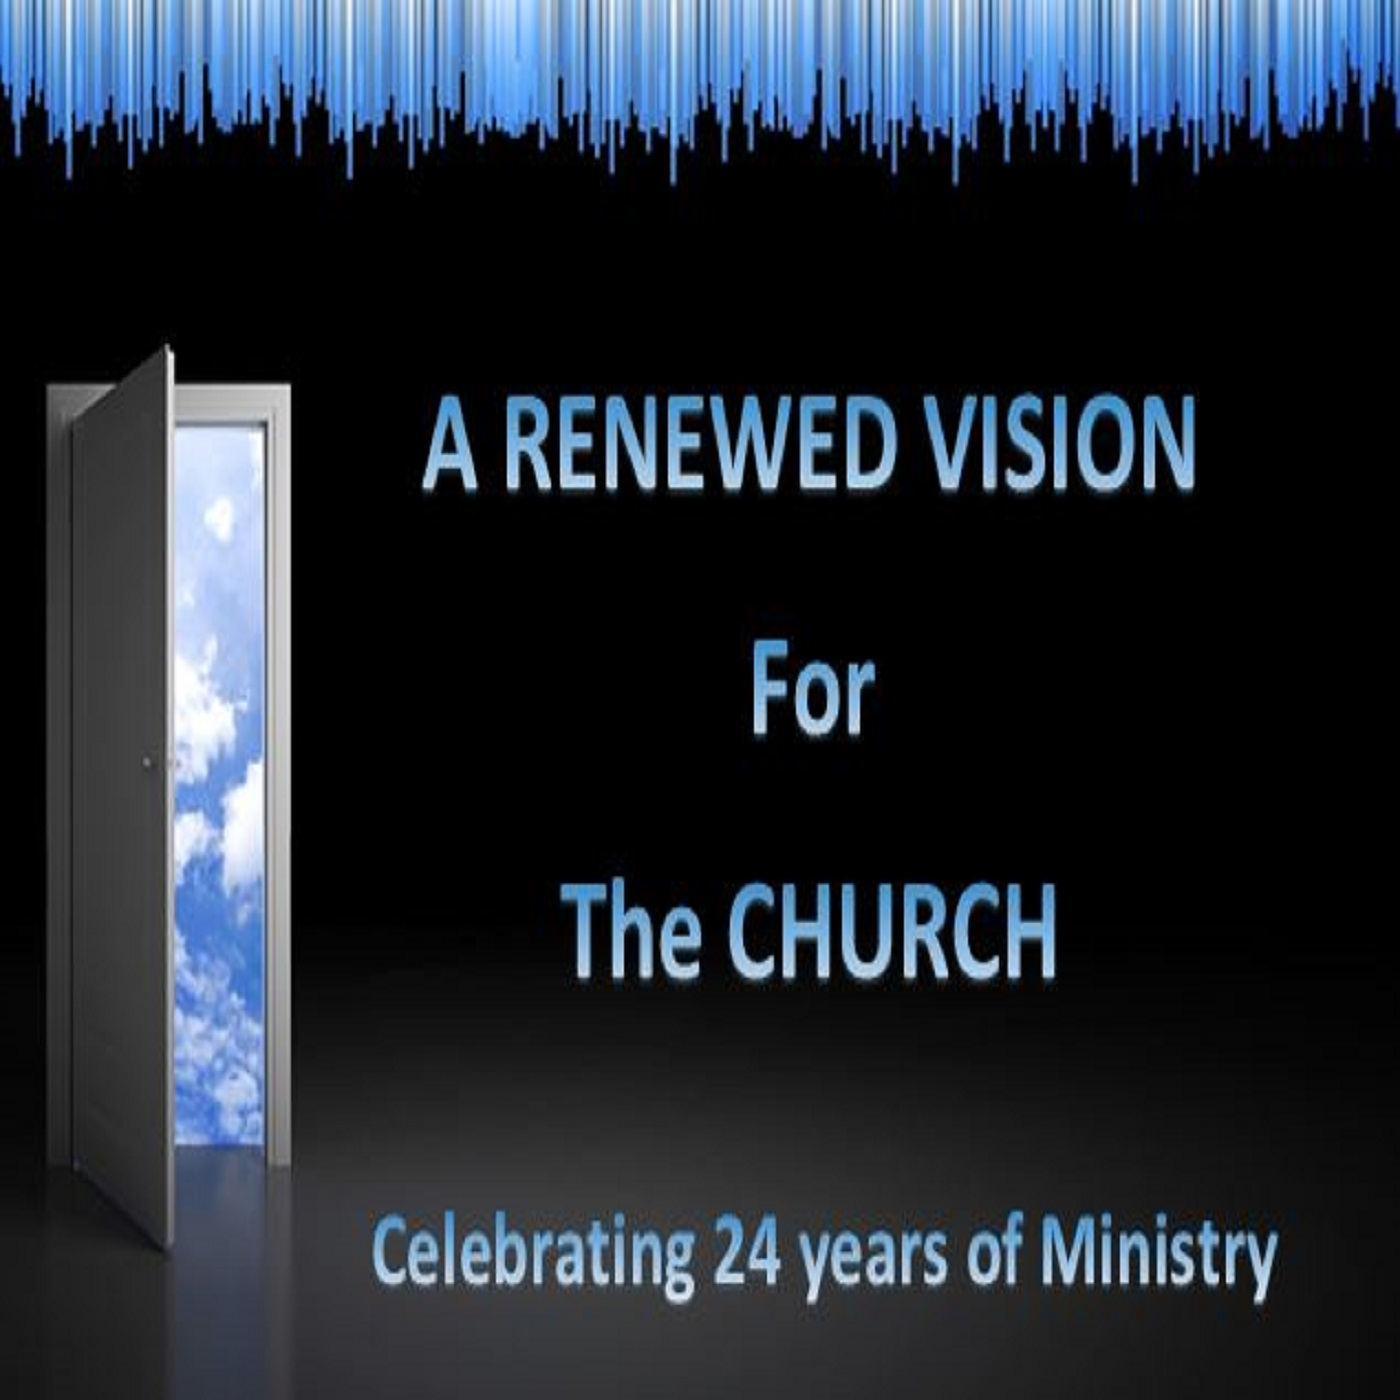 A Renewed Vision for the Church - 24th Anniversary